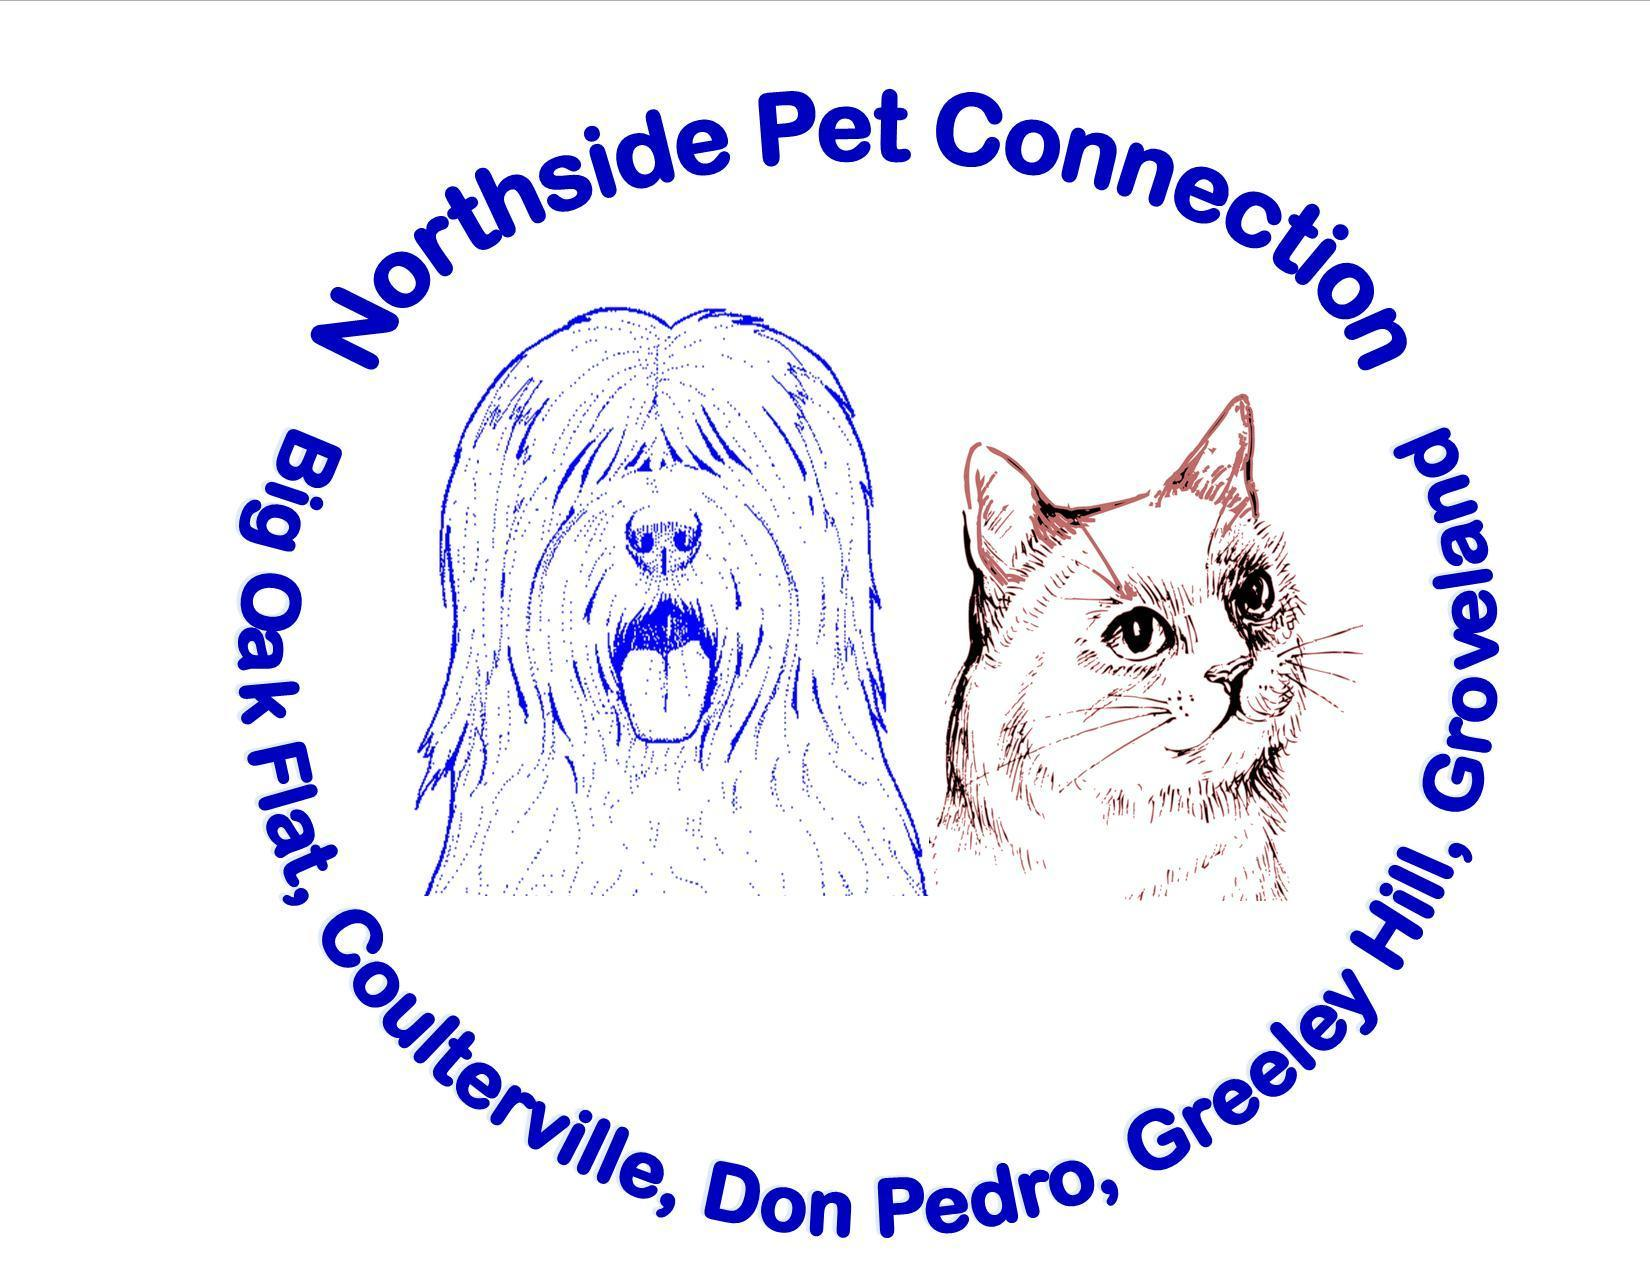 Original Northside Pet Connection logo